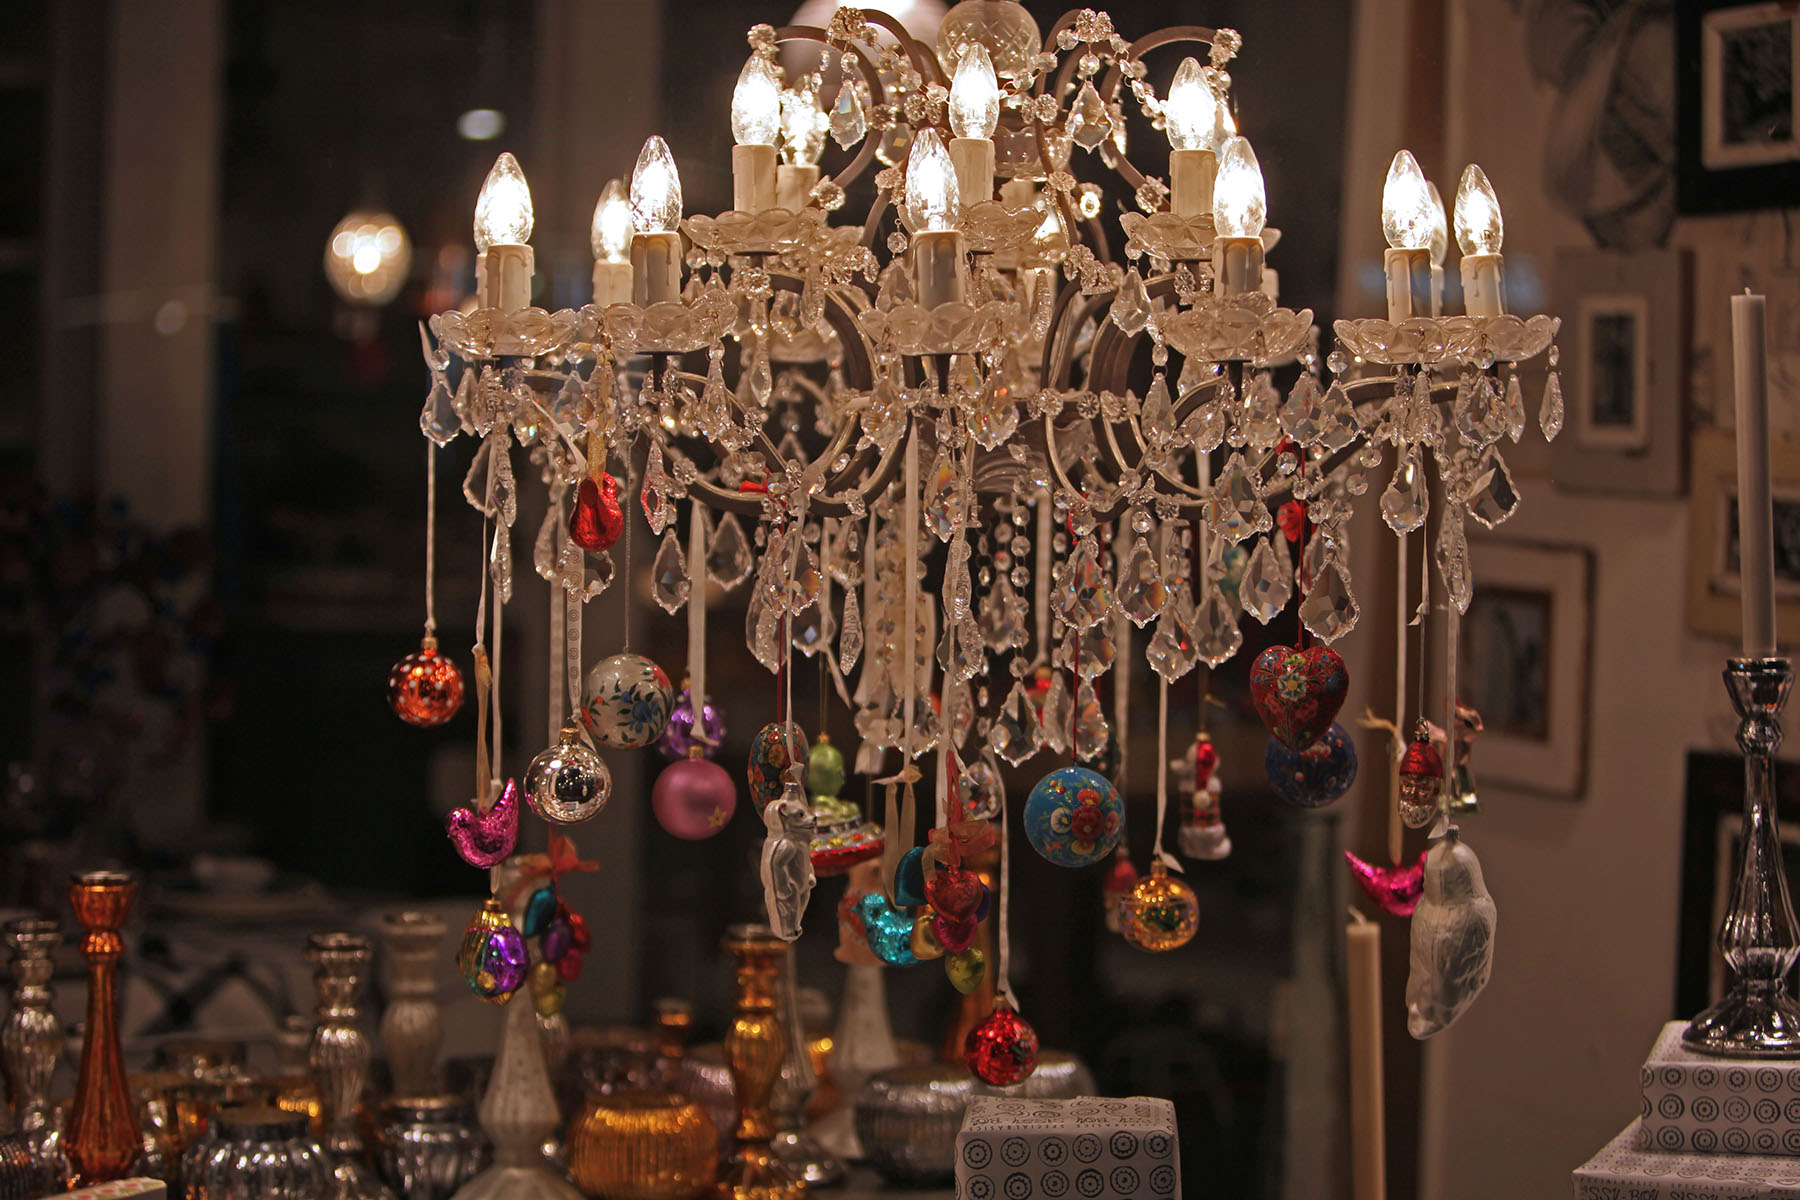 Chandelier christmas ornaments thejots foggy amsterdam in the christmas season chiuki sinterklaas lighting ideas arubaitofo Gallery